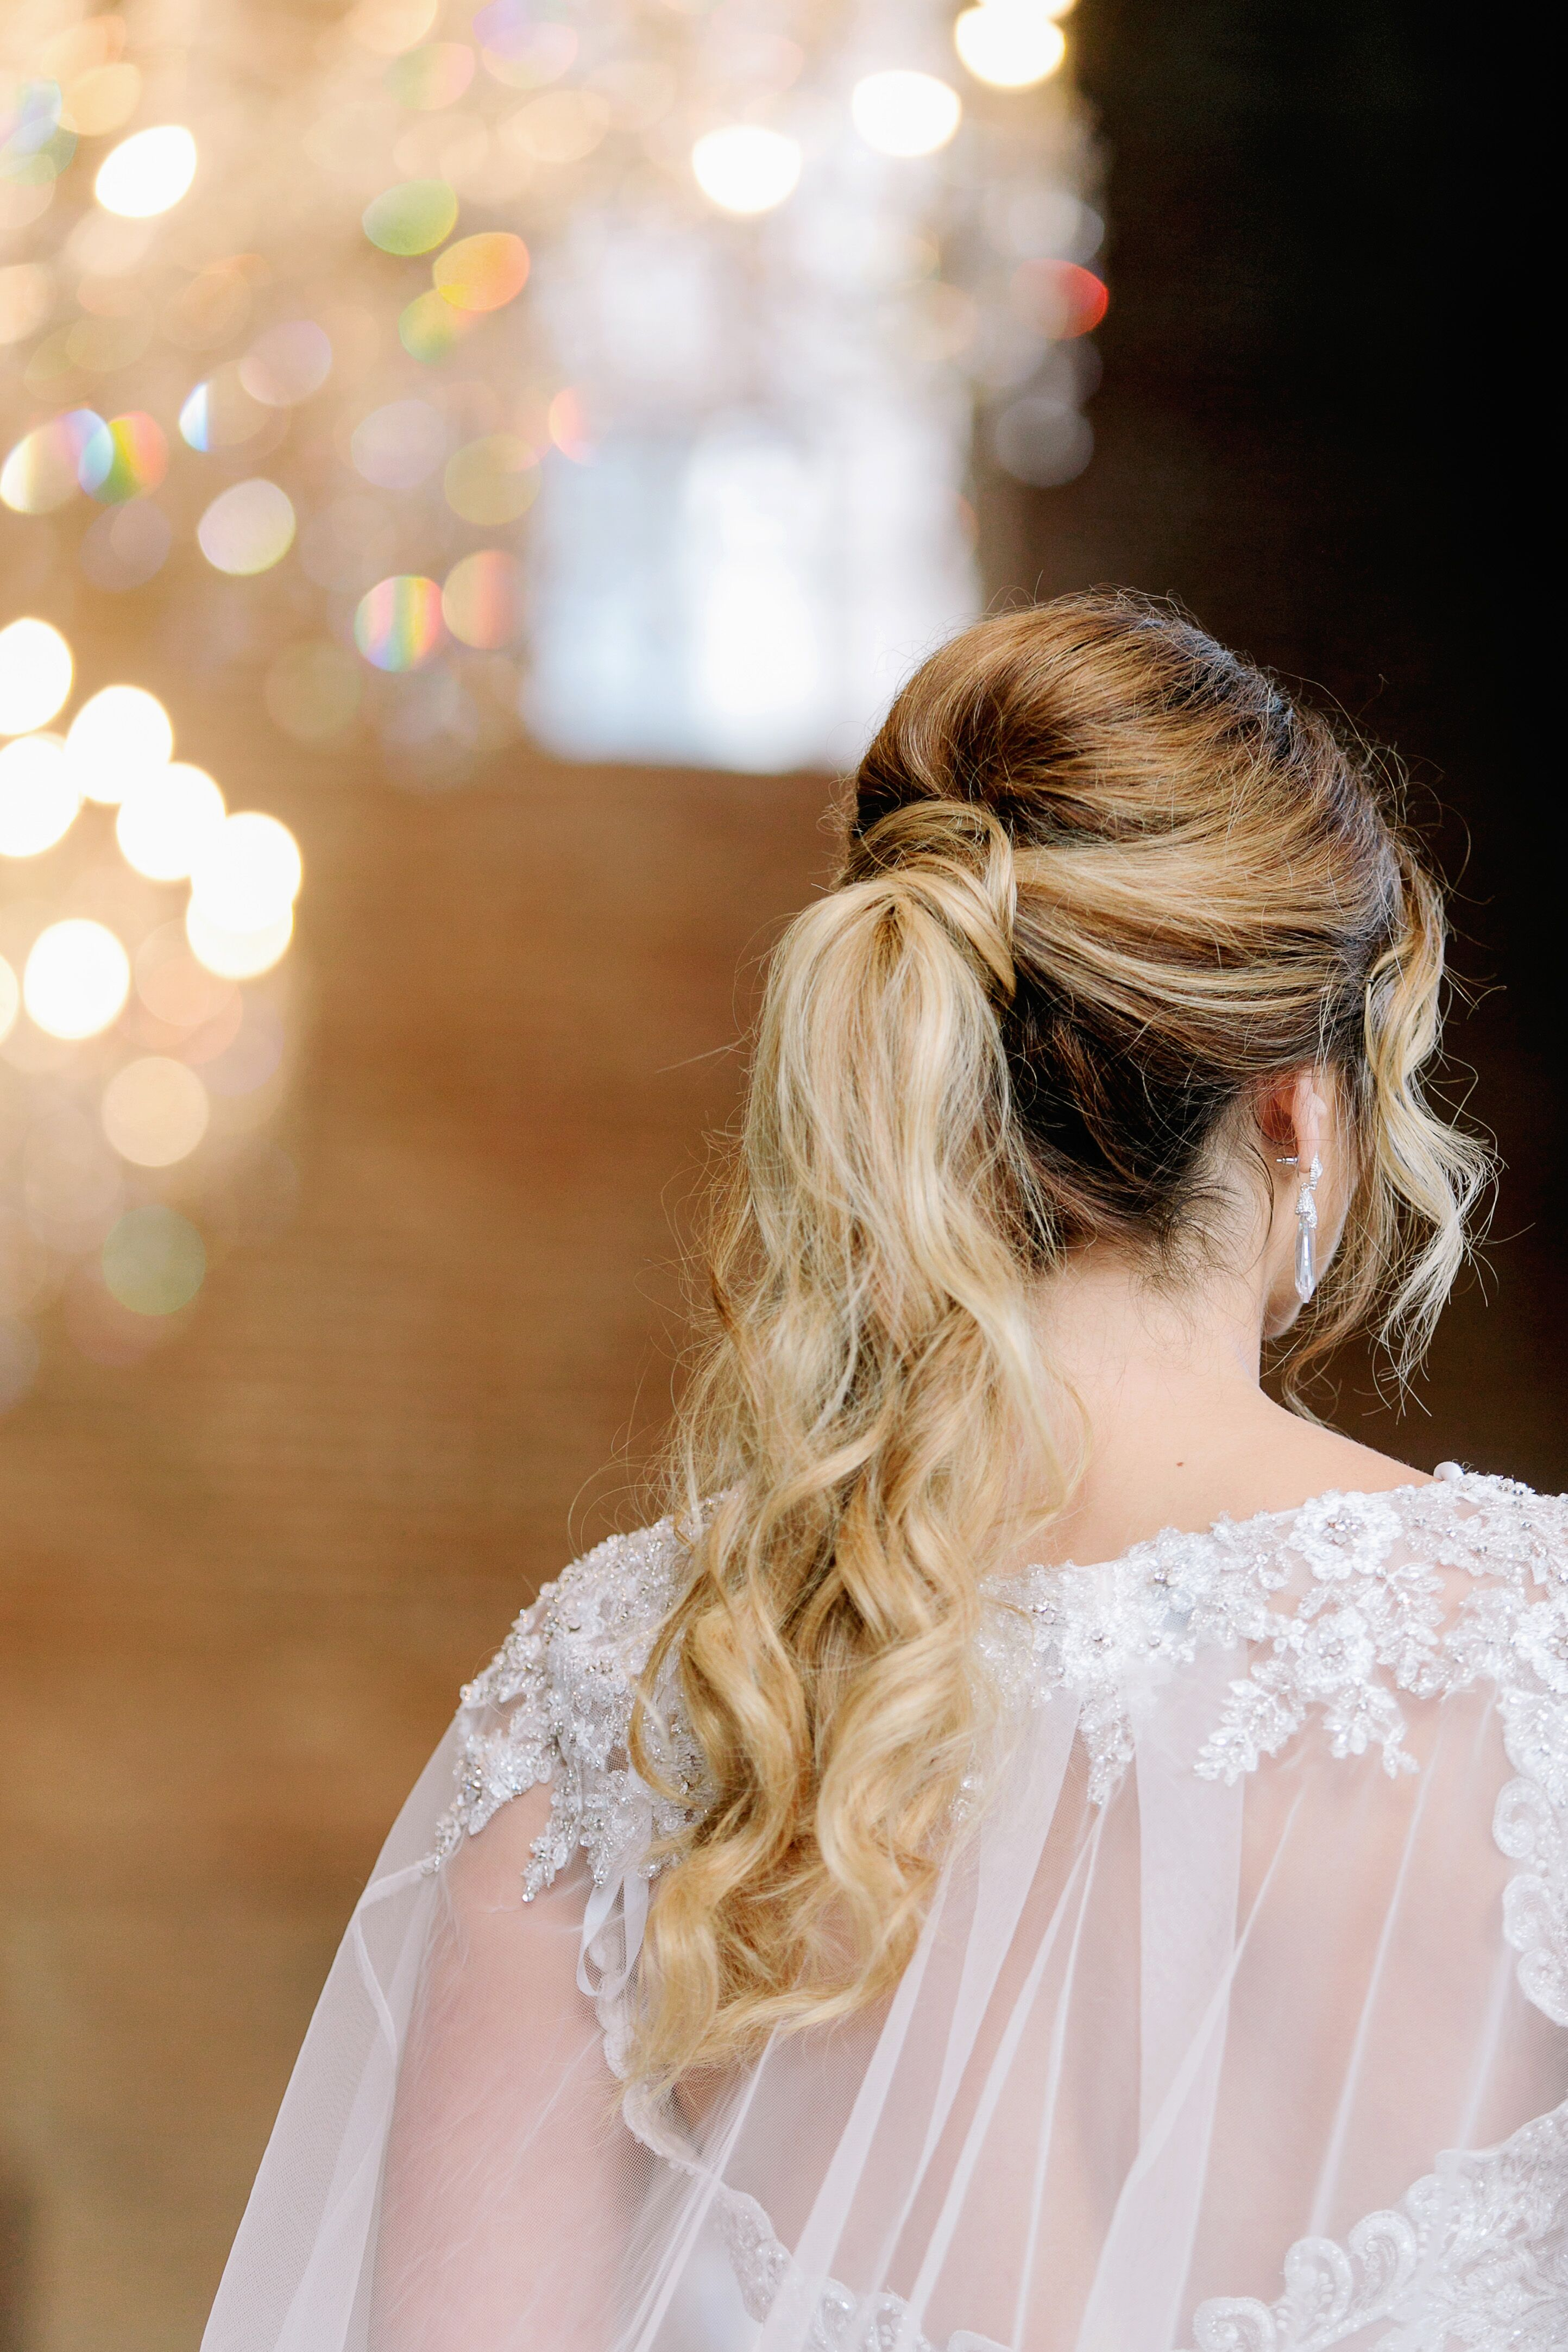 beauty salons in new orleans, la - the knot